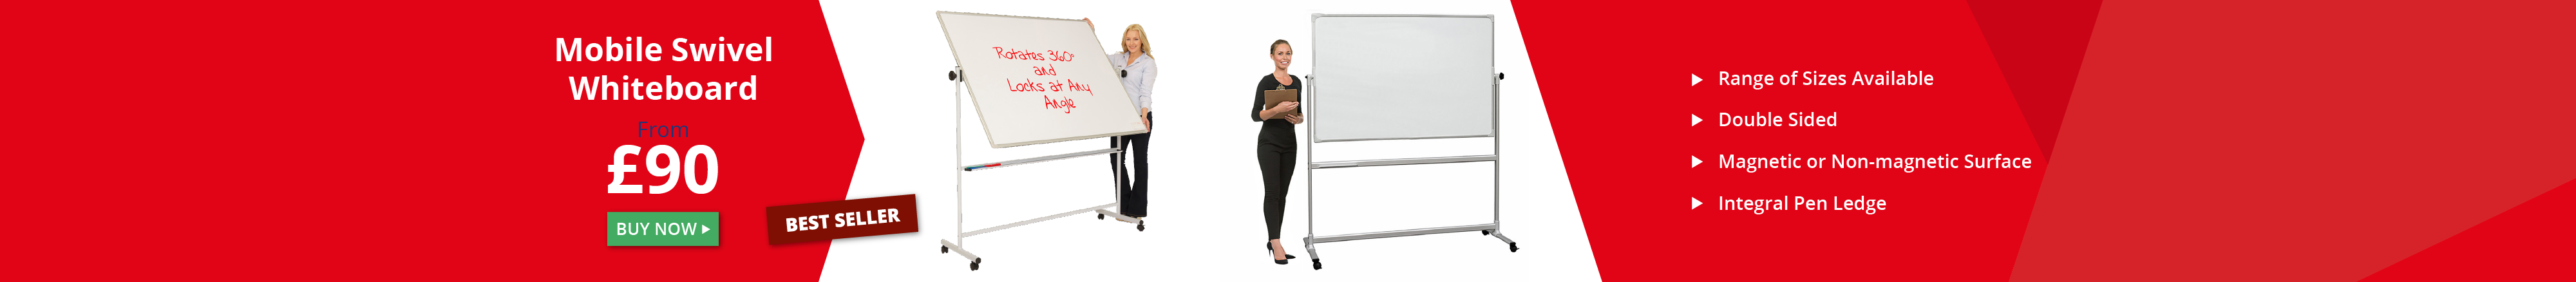 Mobile Whiteboards And Portable Whiteboard on Wheels